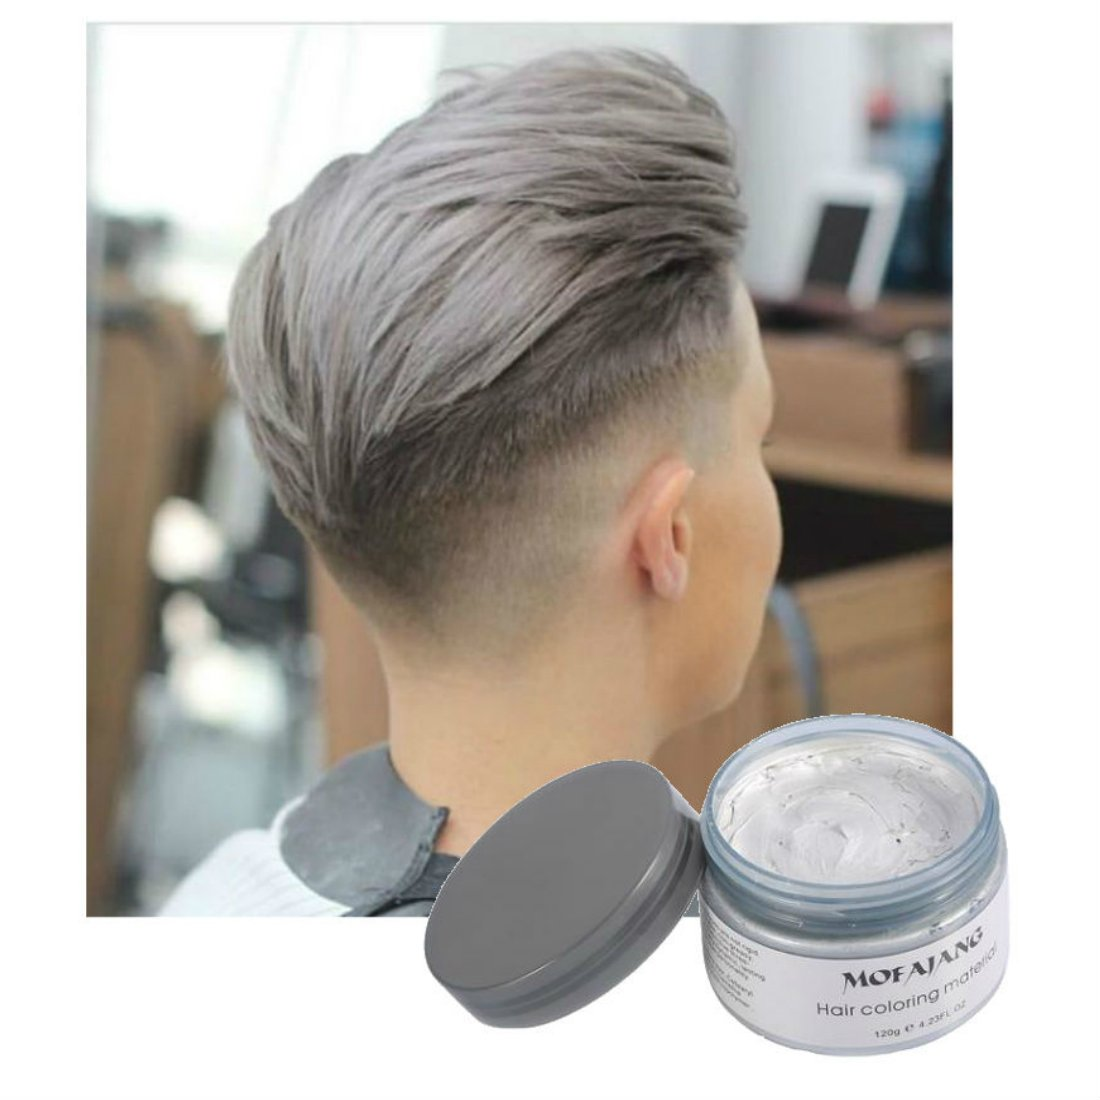 Hair Wax Color - Styling Cream Mud - Natural Hairstyle Dye Pomade - Party Cosplay - Gray - Vakker